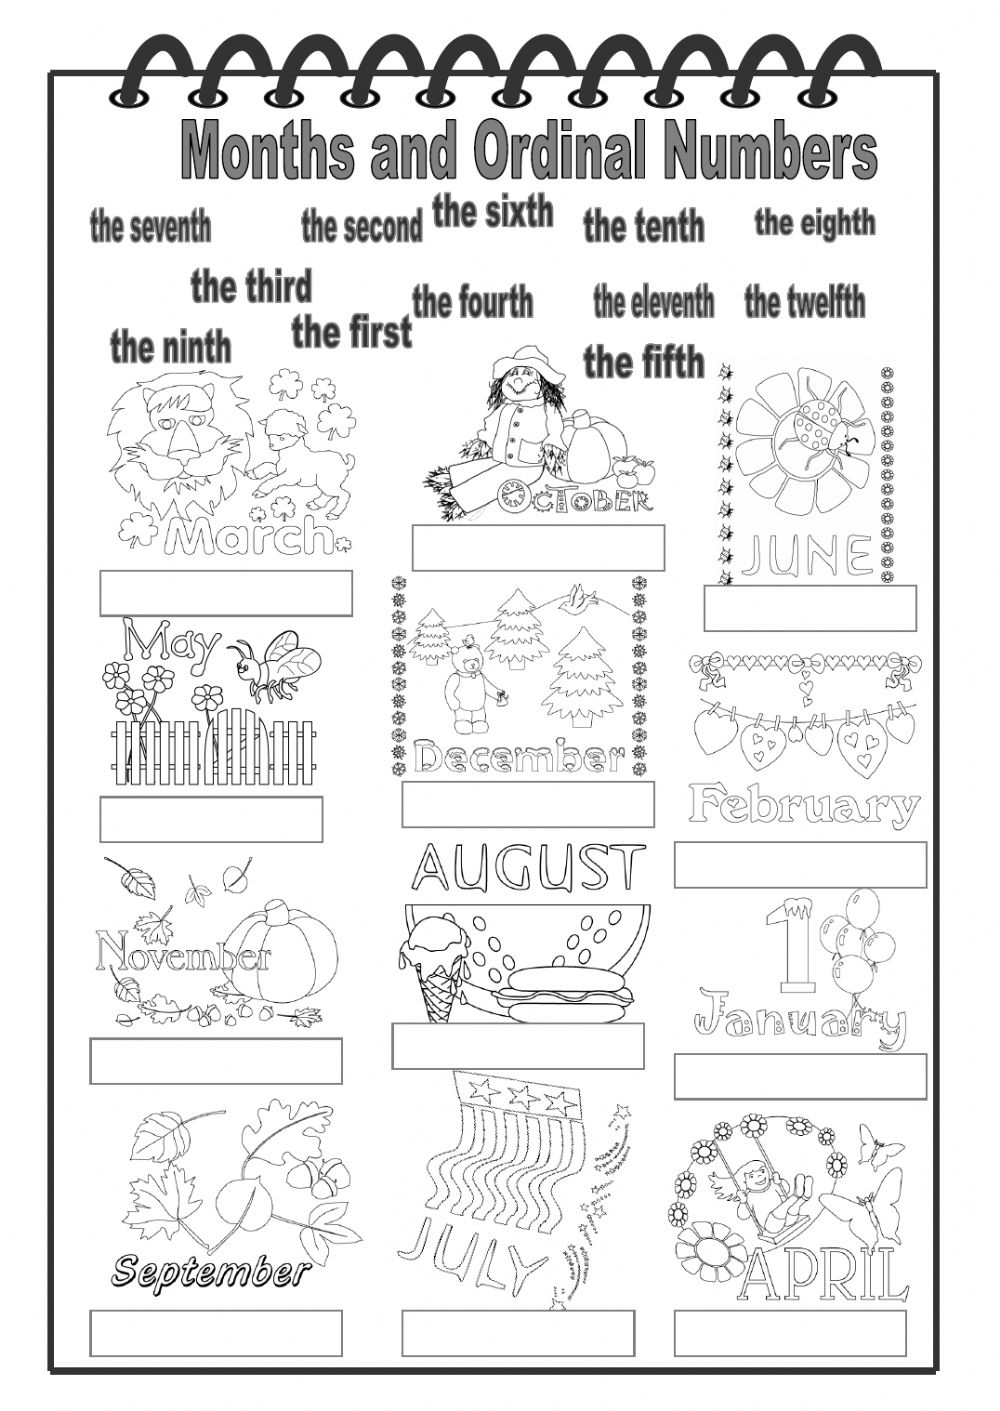 Months and Ordinal Numbers - Interactive worksheet